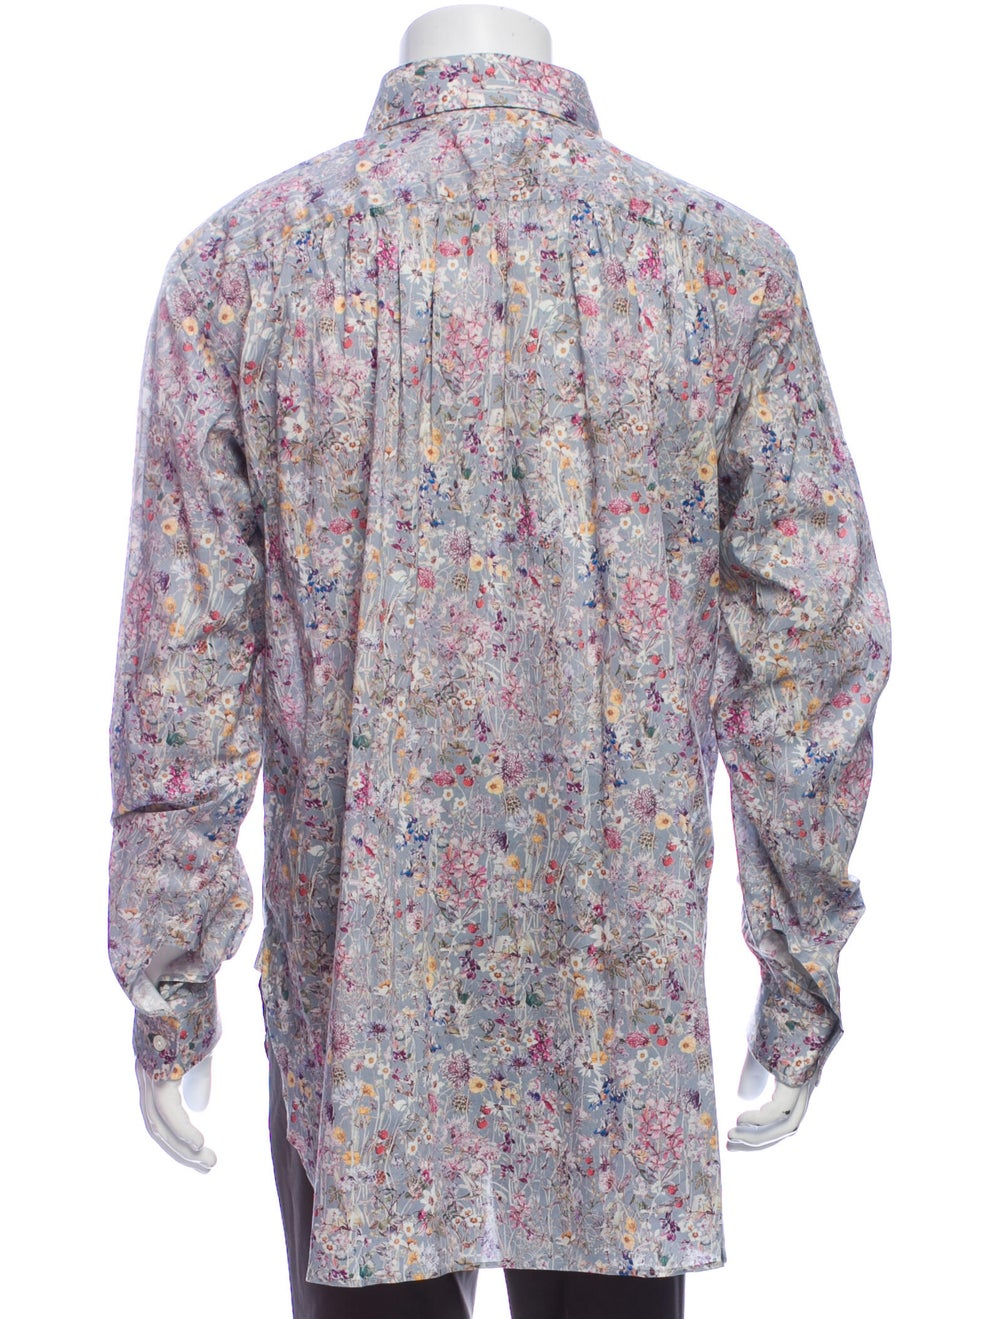 Needles Floral Print Long Sleeve Shirt Grey - image 3